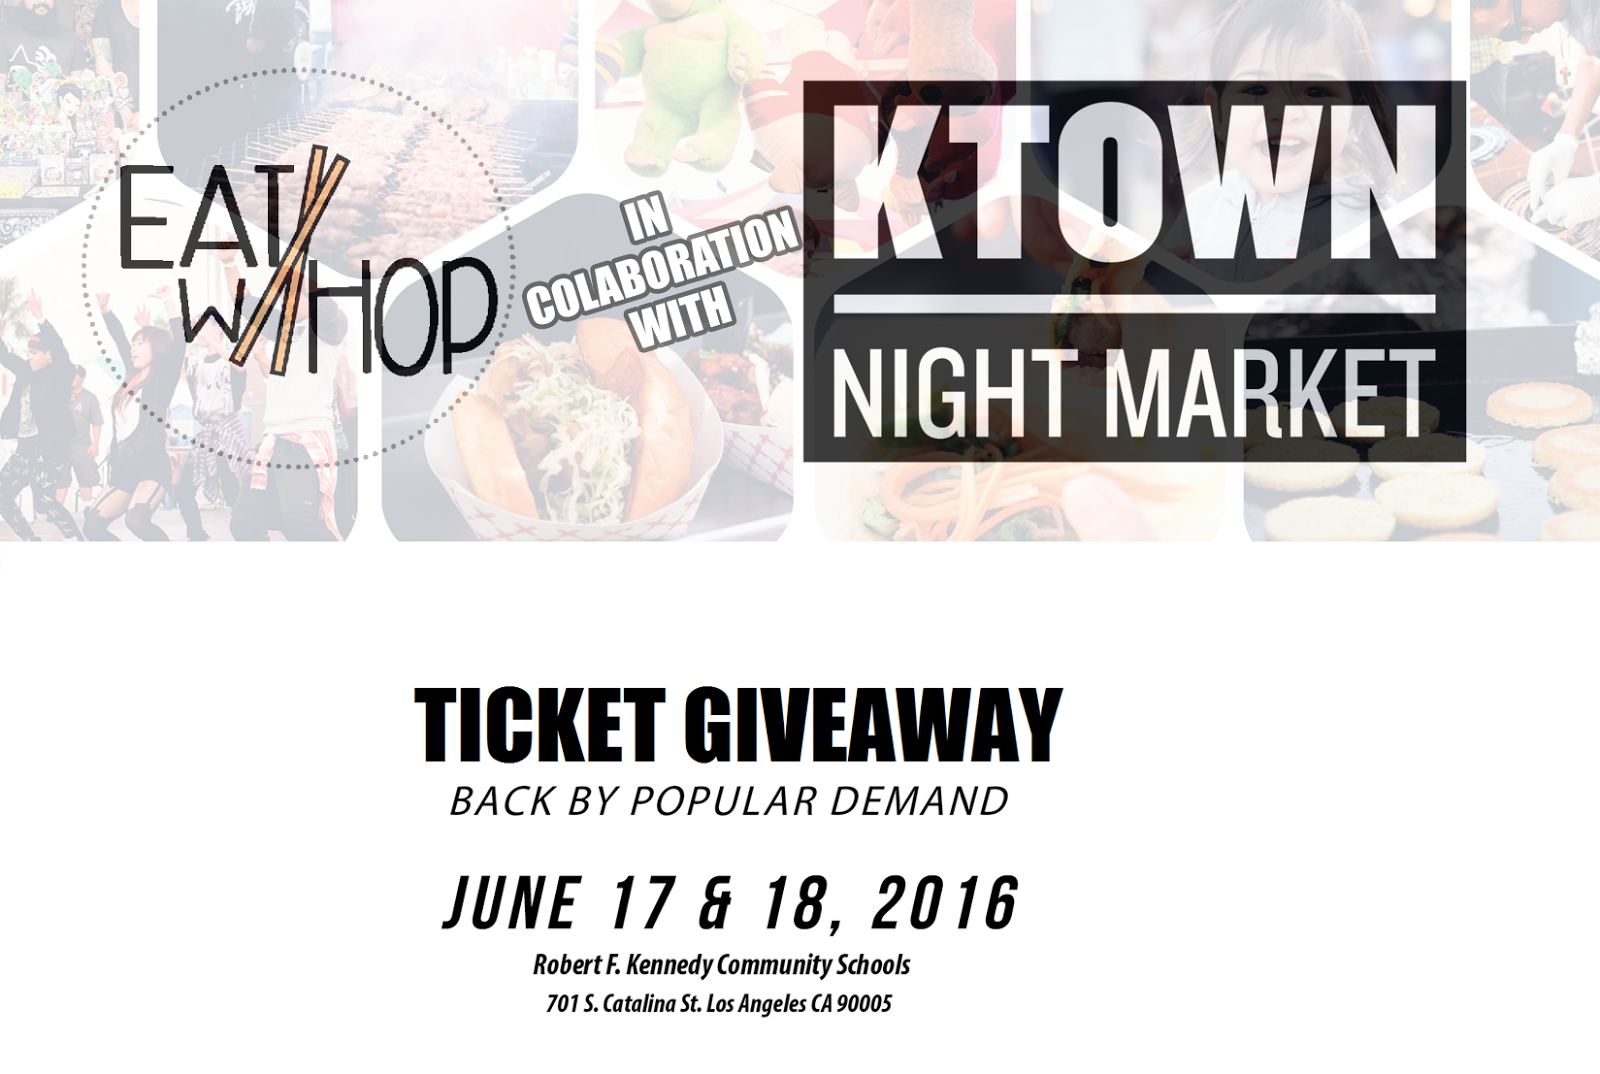 KTOWN NIGHT MARKET IS BACK BY POPULAR DEMAND JUNE 17-18 (TICKET GIVEAWAY)